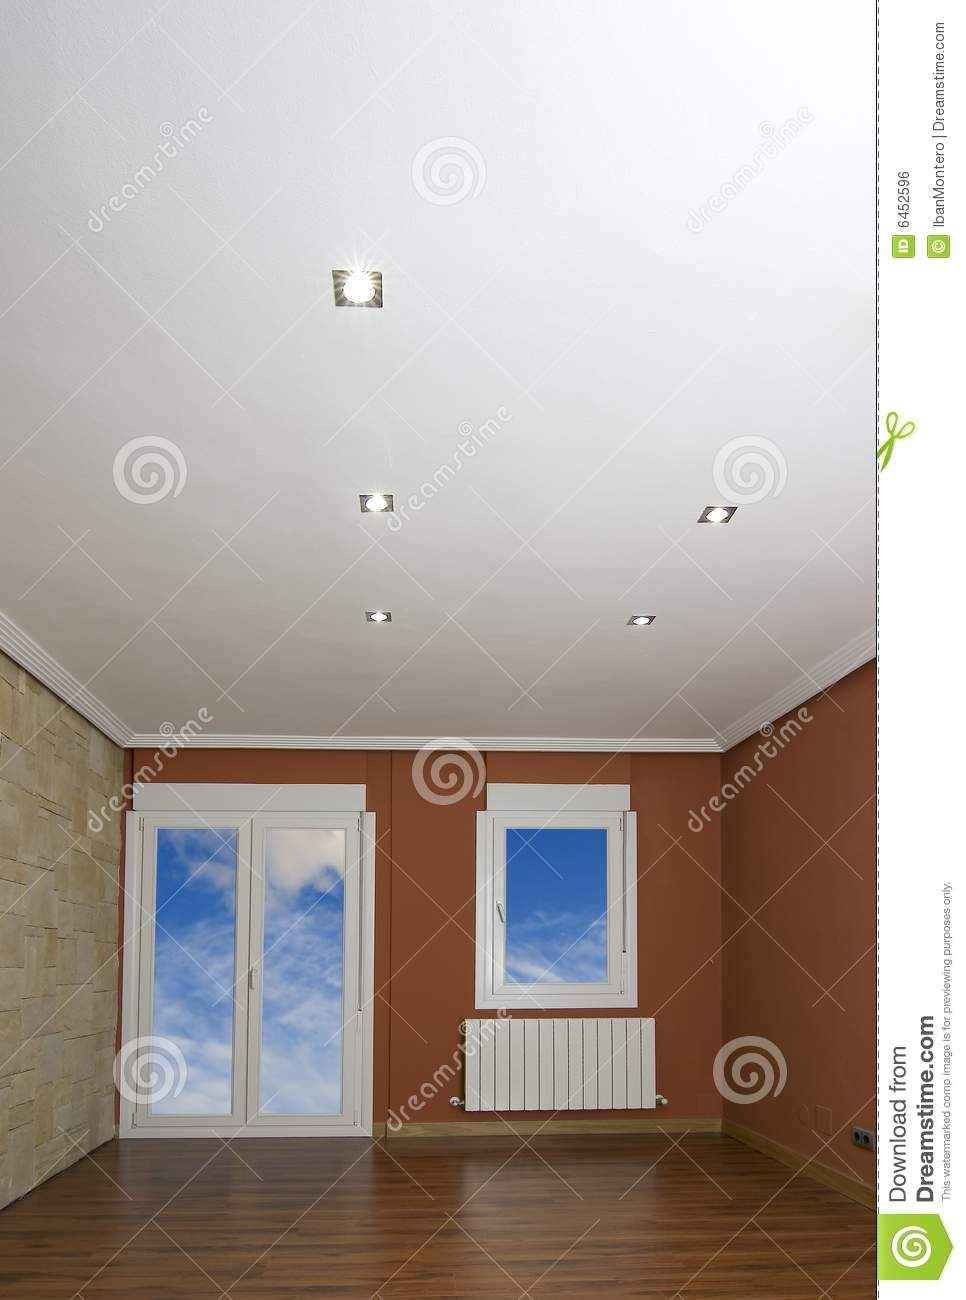 home room royalty free stock image image 6452596